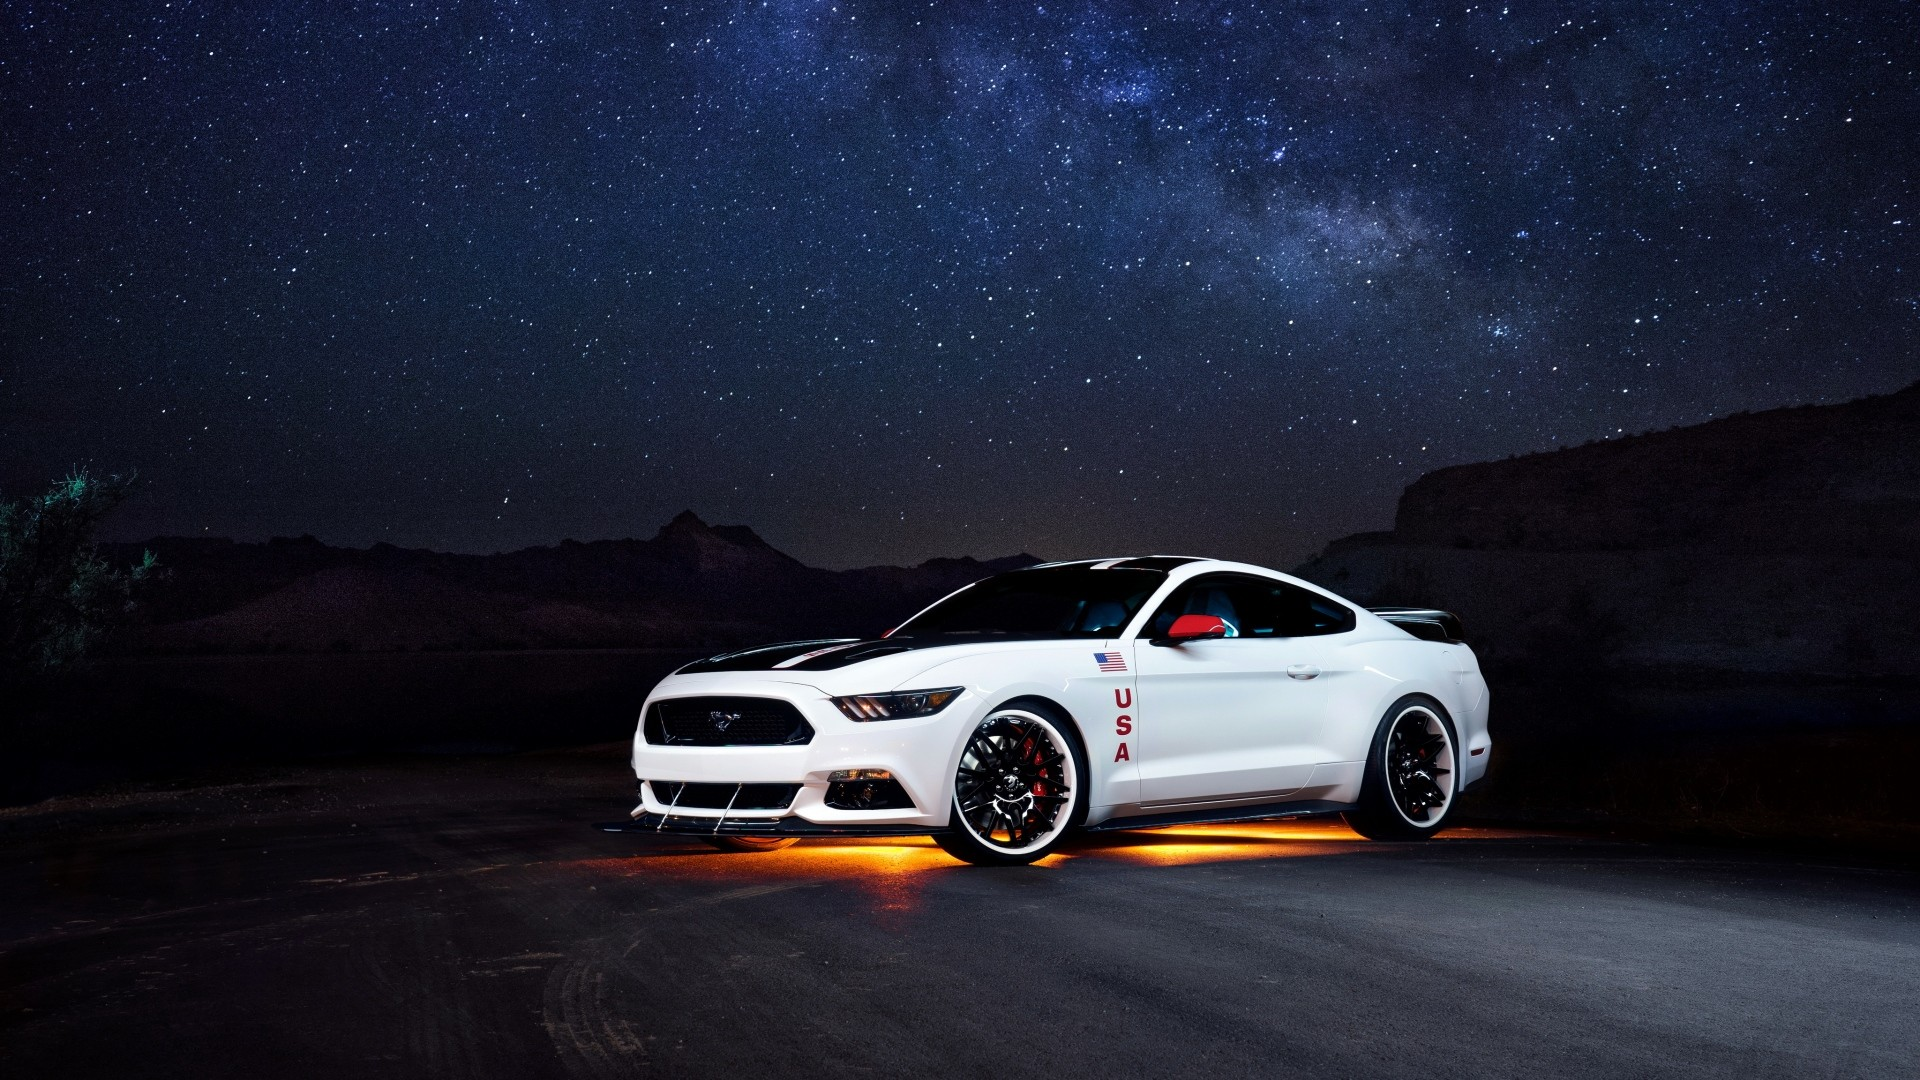 Beautiful Wallpaper High Quality Mustang - 805114-2018-mustang-wallpaper-1920x1080-cell-phone  Best Photo Reference_164299.jpg